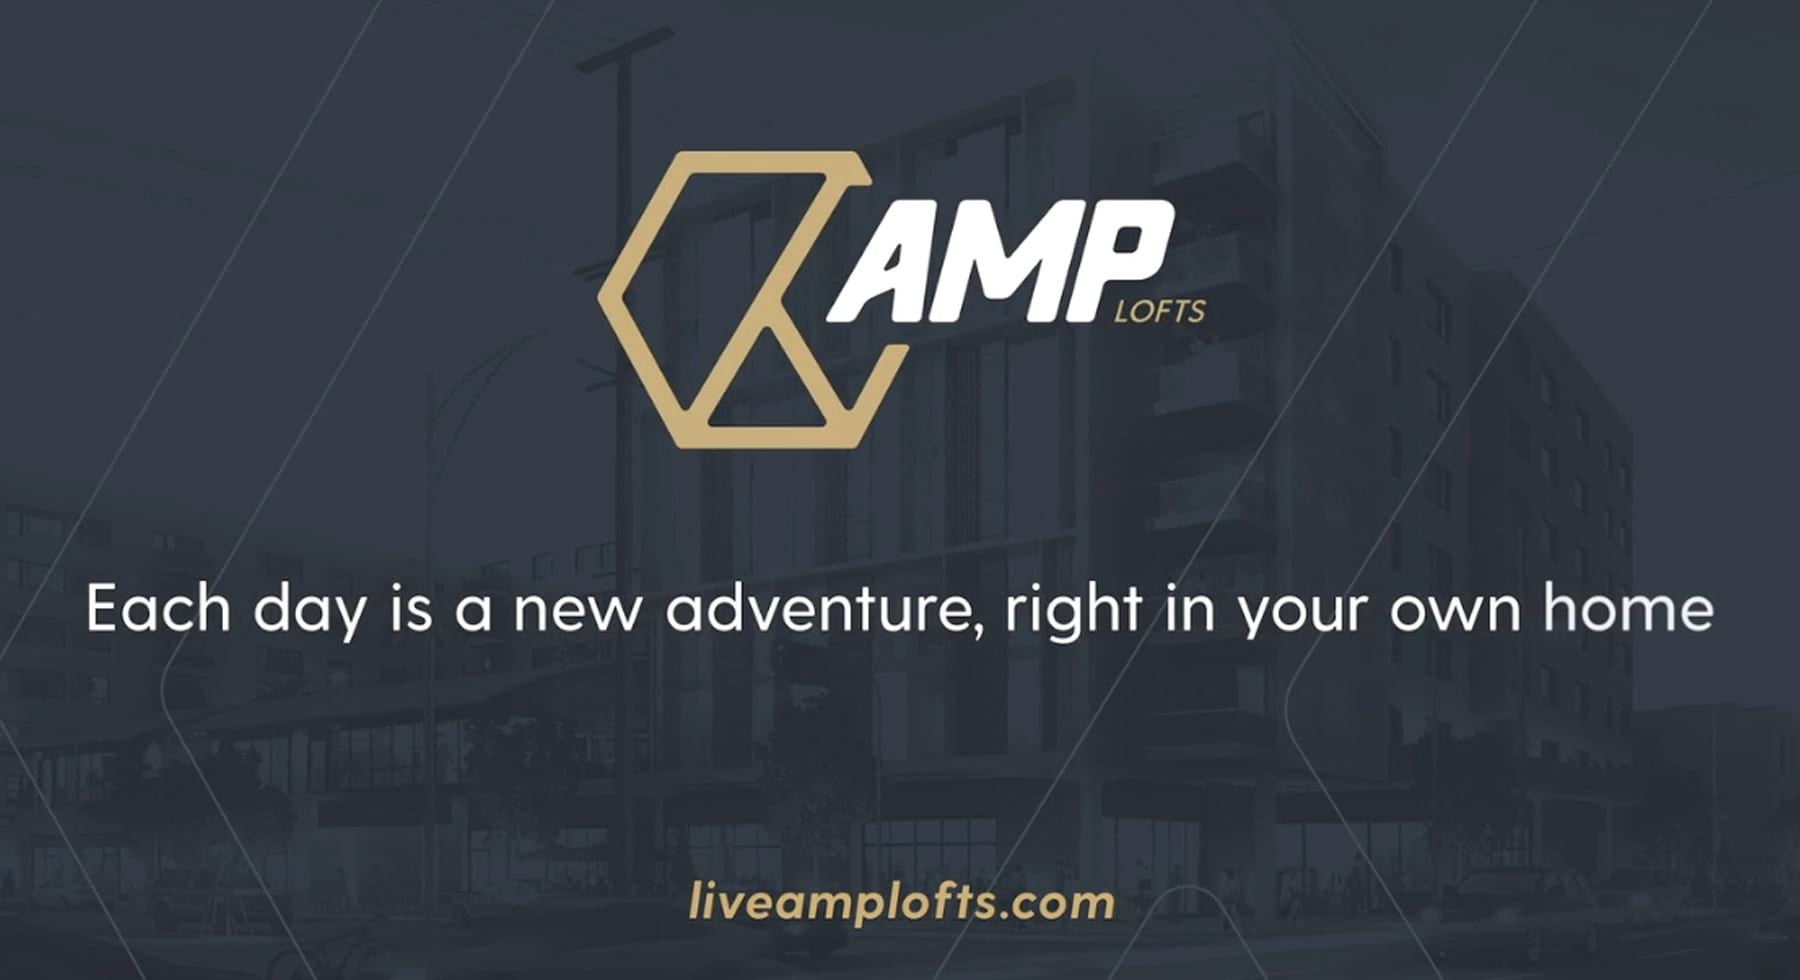 AMP Lofts is a pet-friendly apartment community in Los Angeles, CA